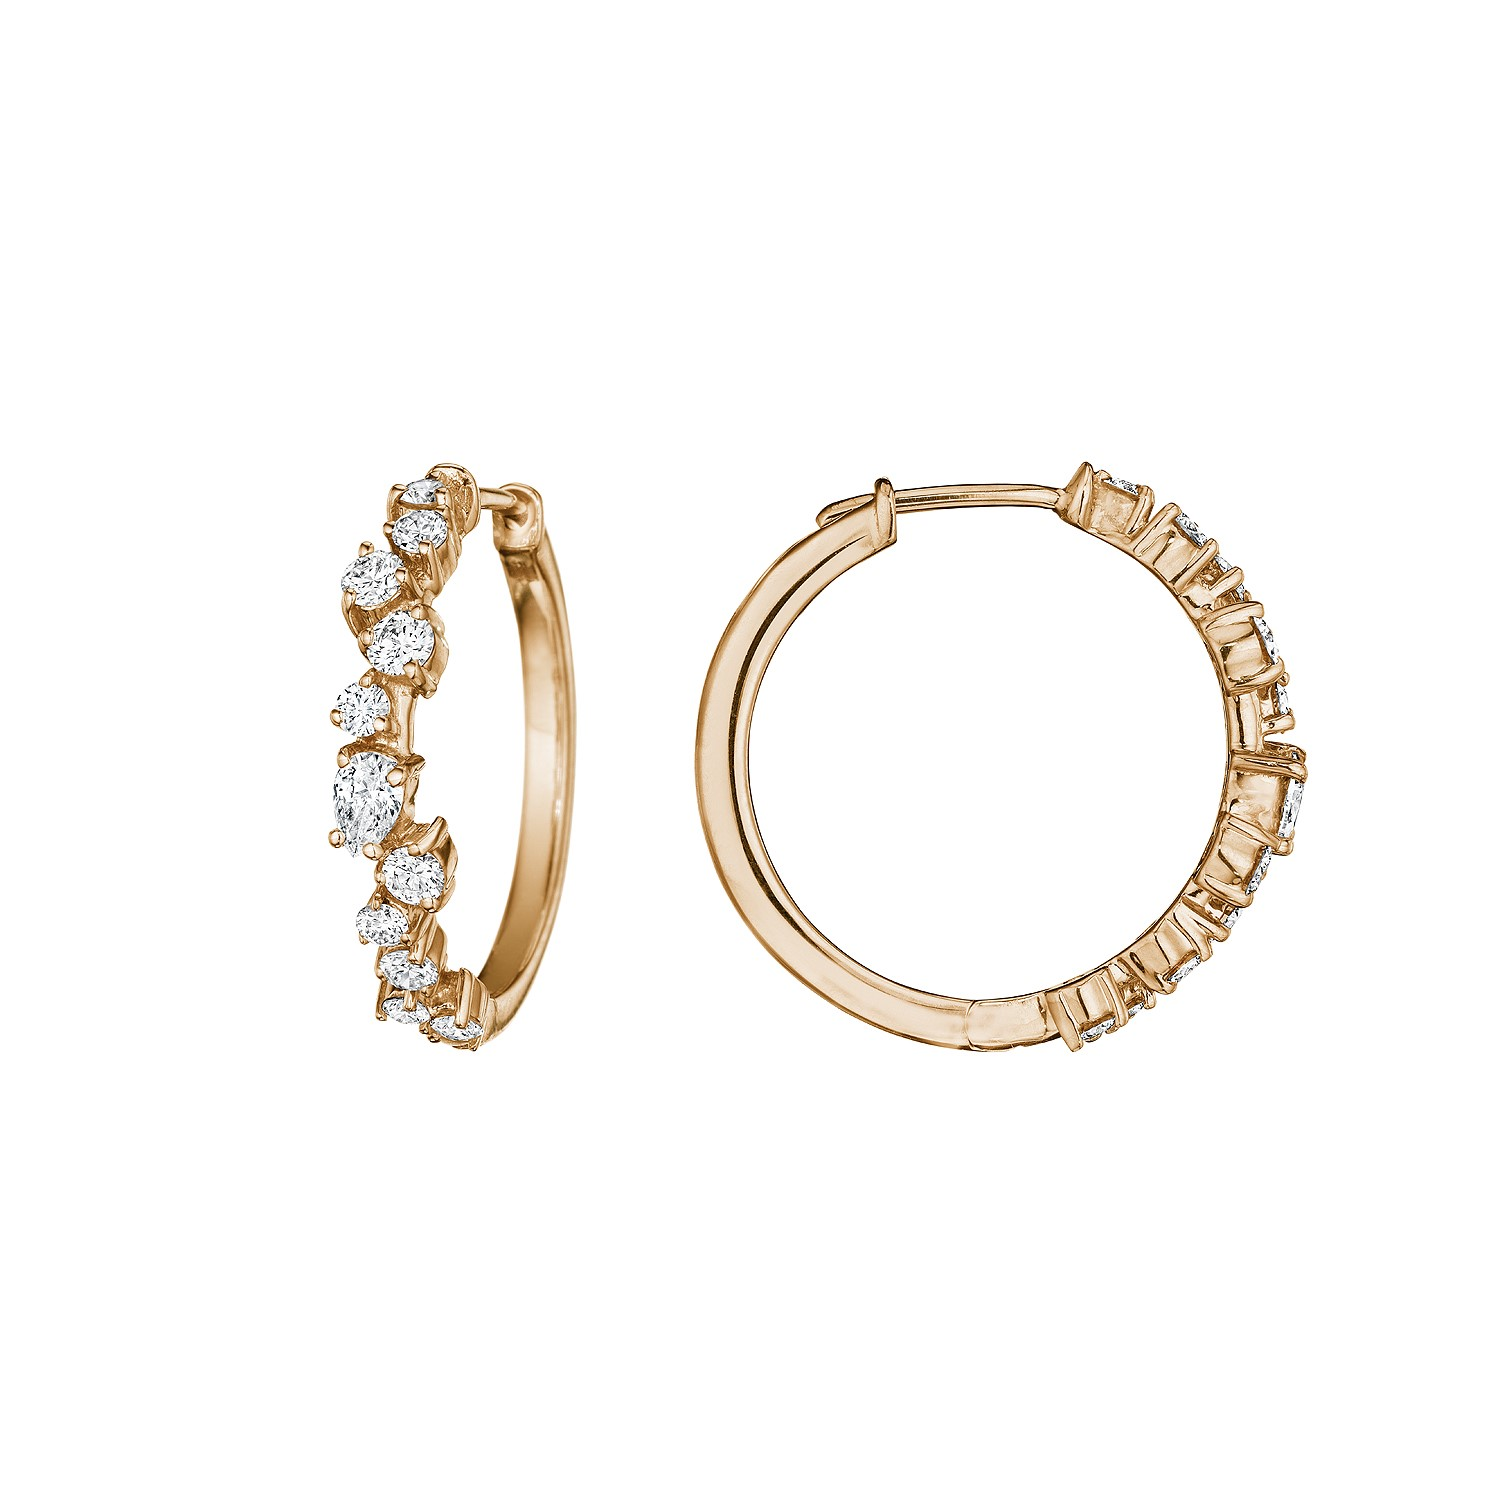 Penny Preville 18K Rose Gold .71cts  Diamonds Gold Earrings with Stones E4299R